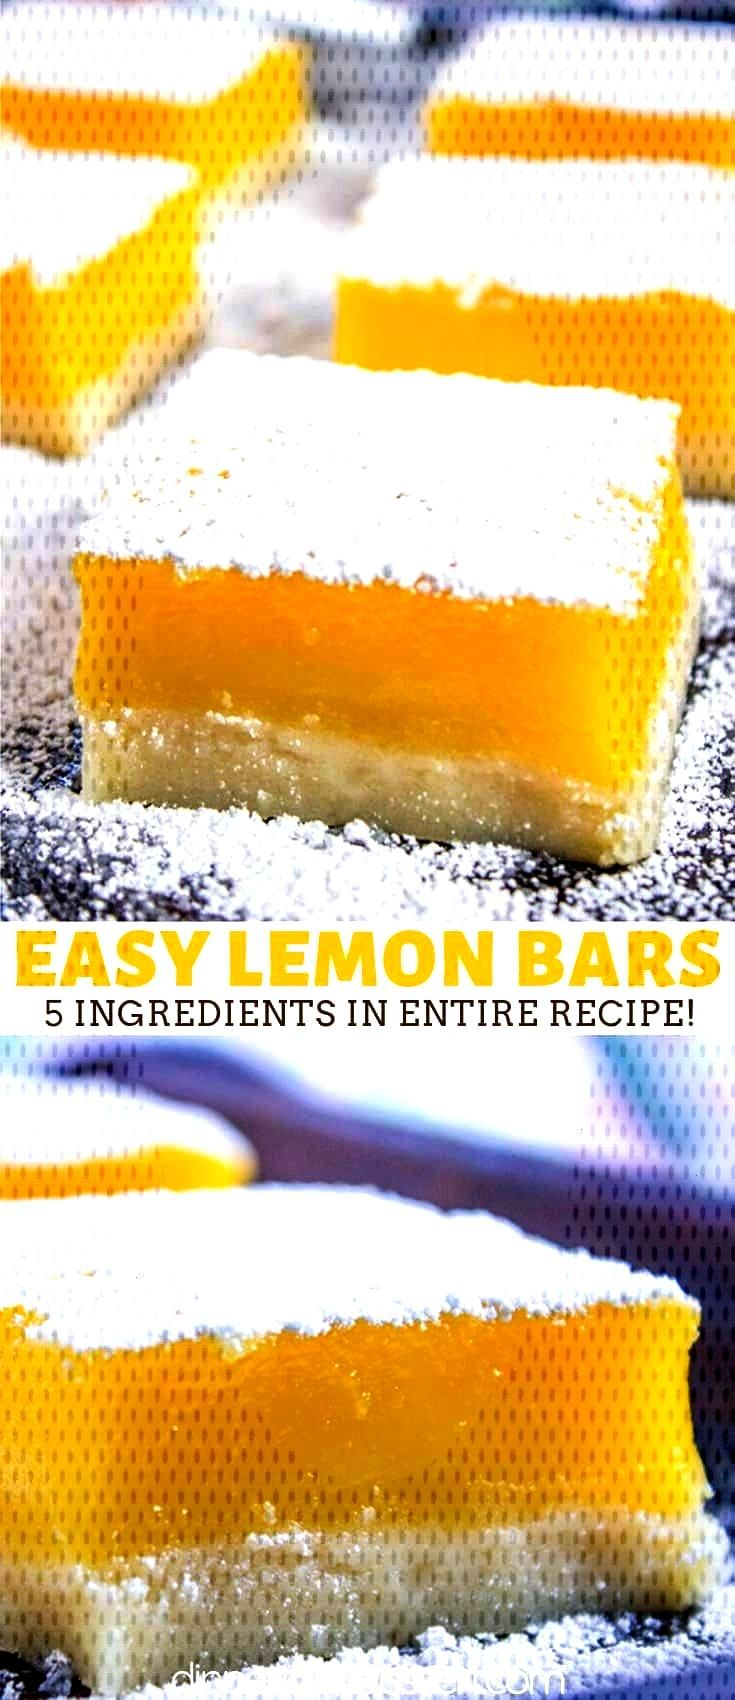 Lemon Bars have a buttery shortbread crust, a tangy lemon curd filling and just 5 ingredients in th